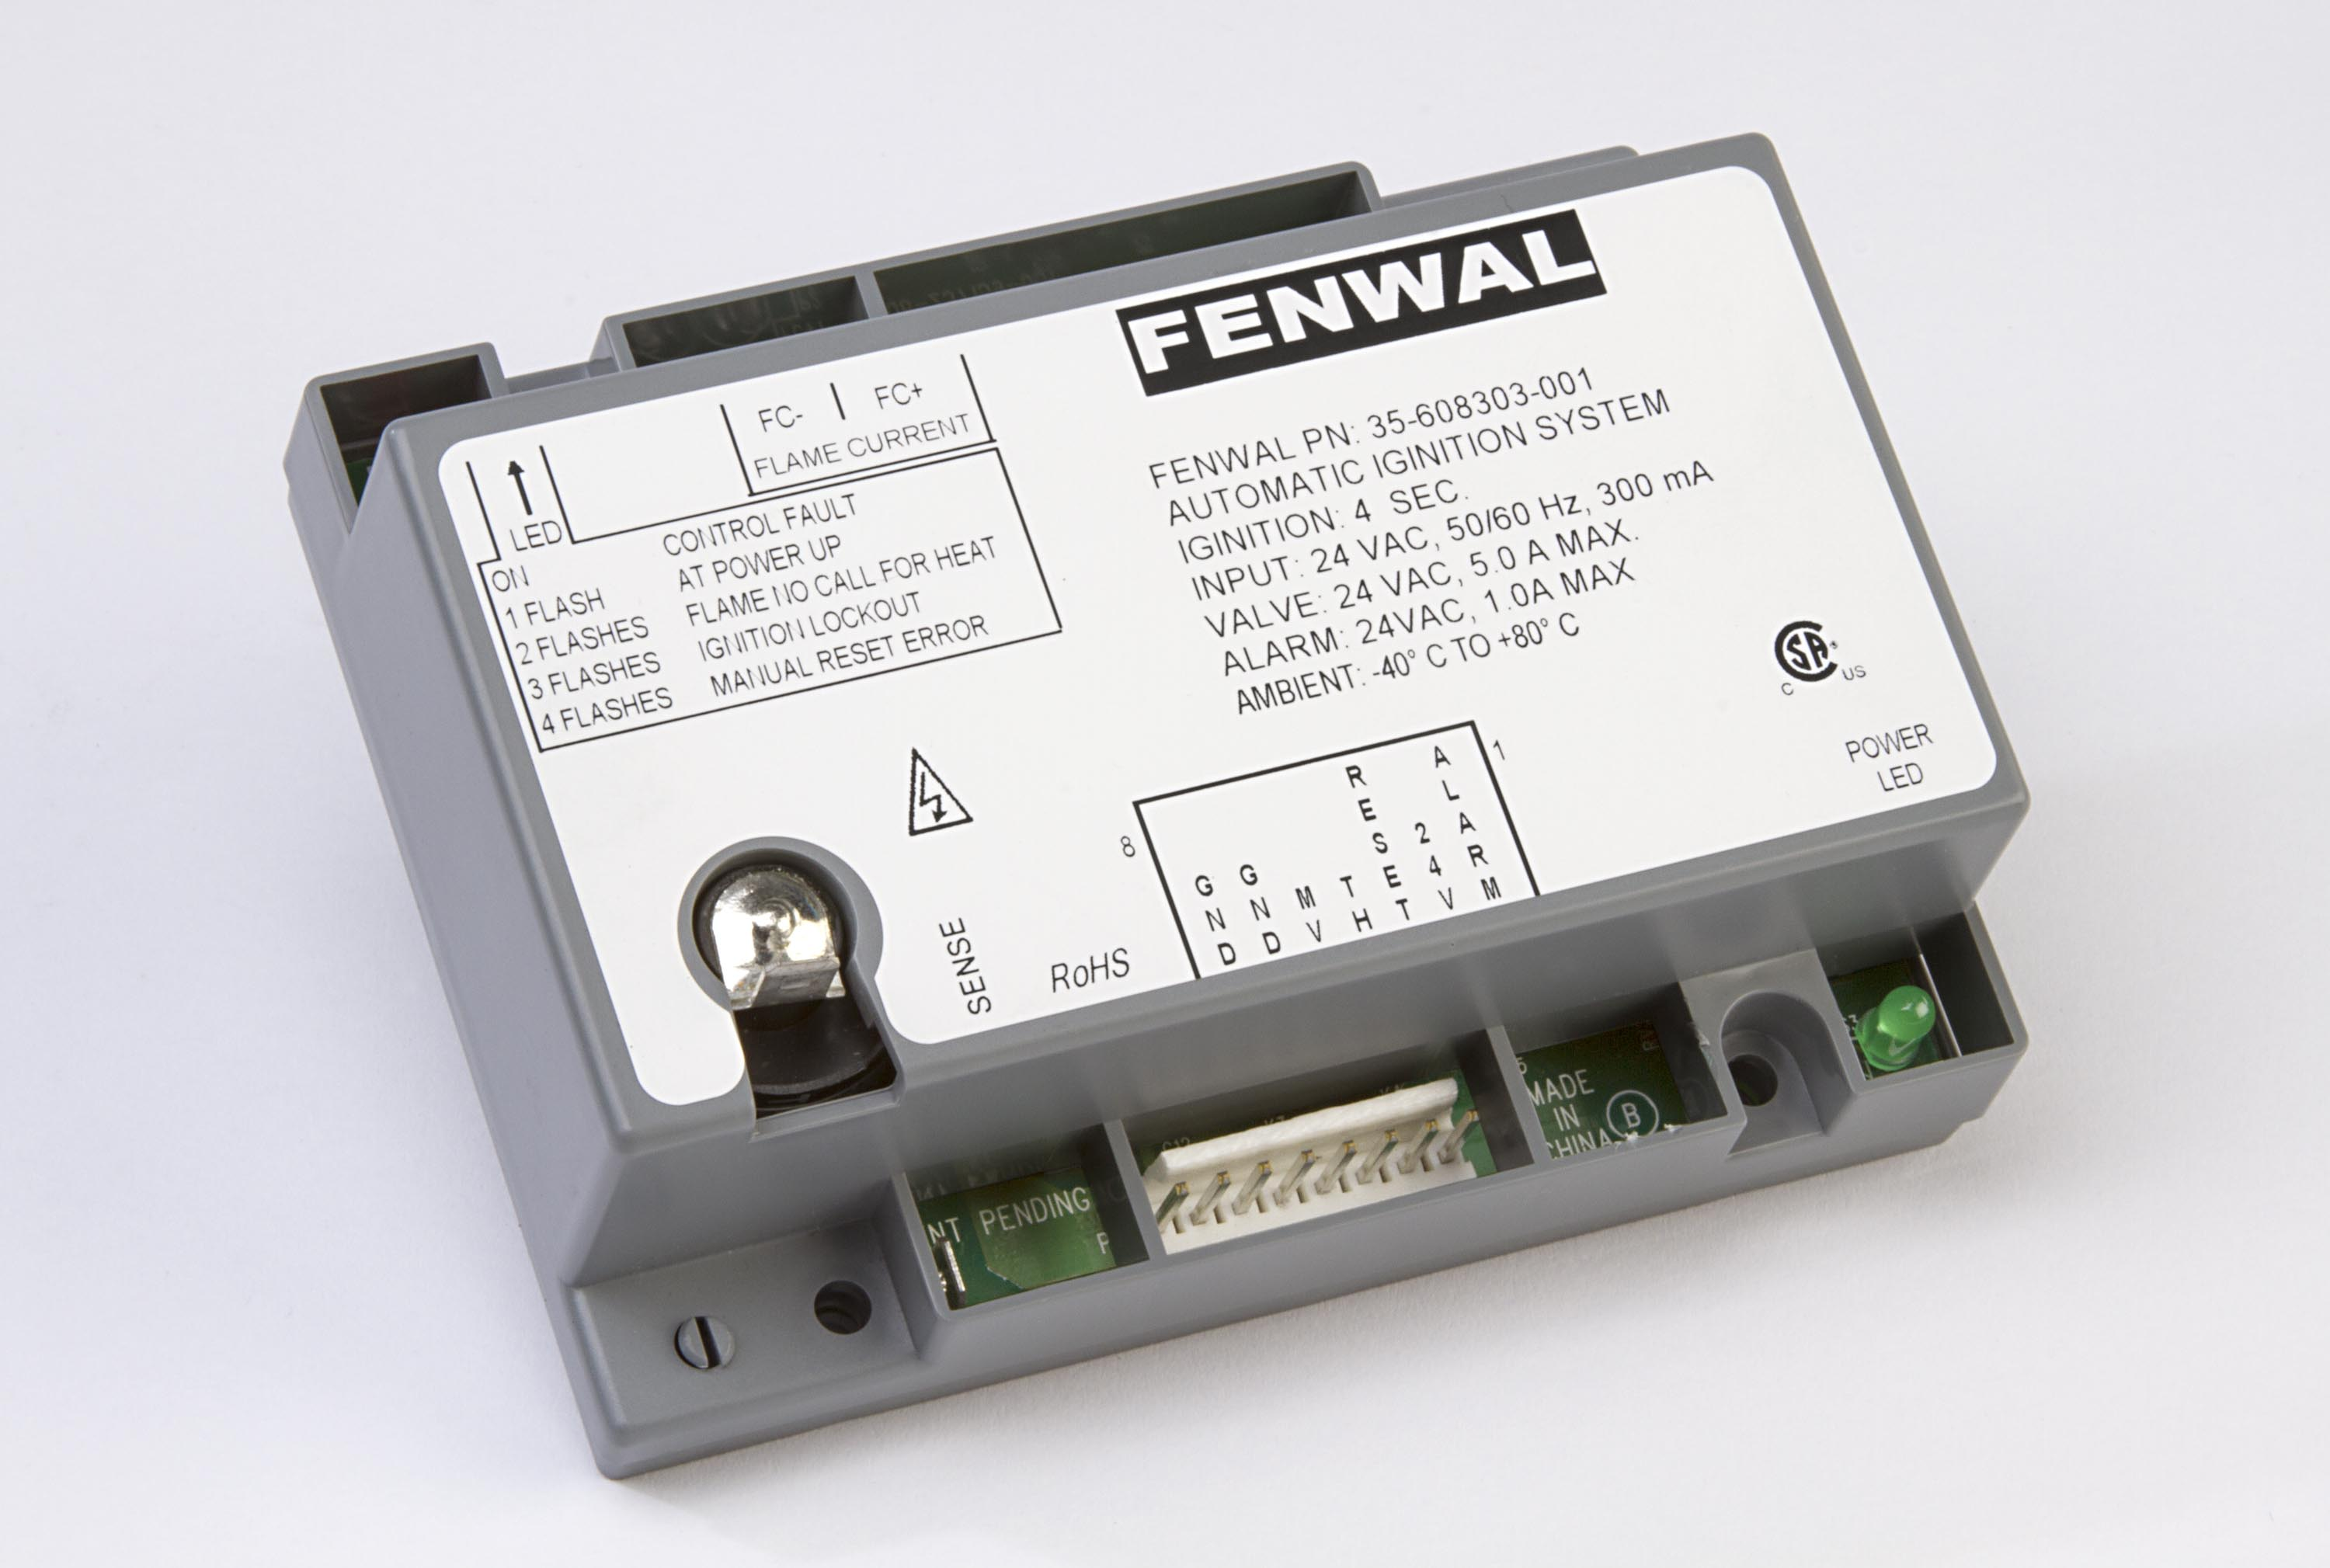 fenwal controls rh kidde fenwal com Fire Alarm System Manual Gemini Home Alarm System Manual